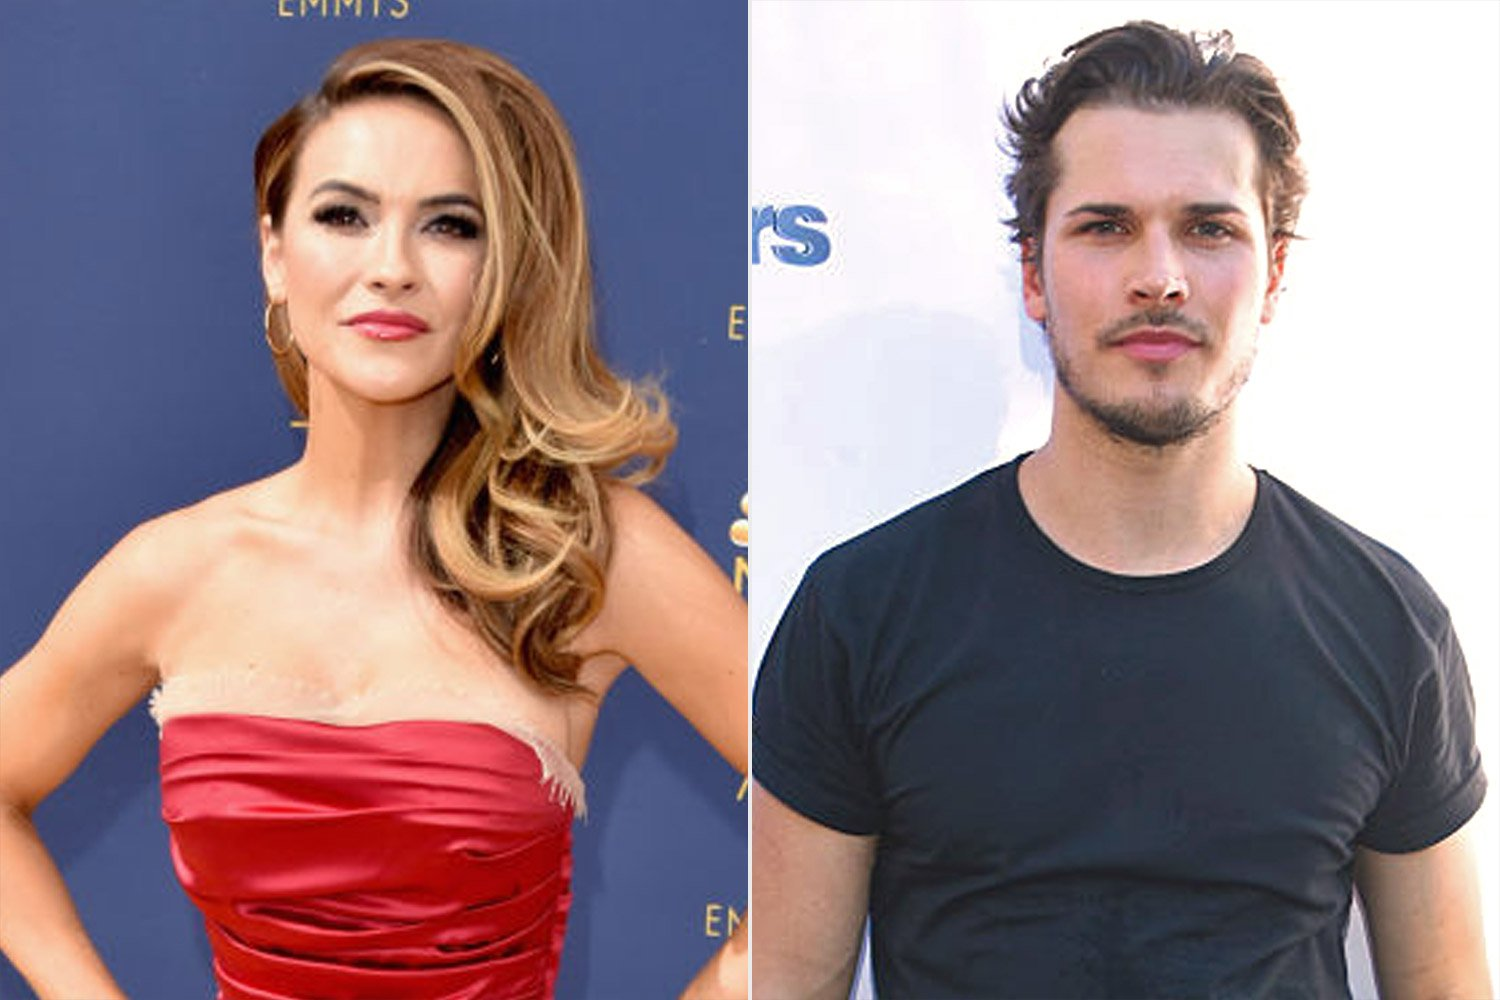 DWTS Star Gleb Savchenko's Marriage Ending Because Of Infidelity — Chrishell Stause Clears Affair Rumors Up